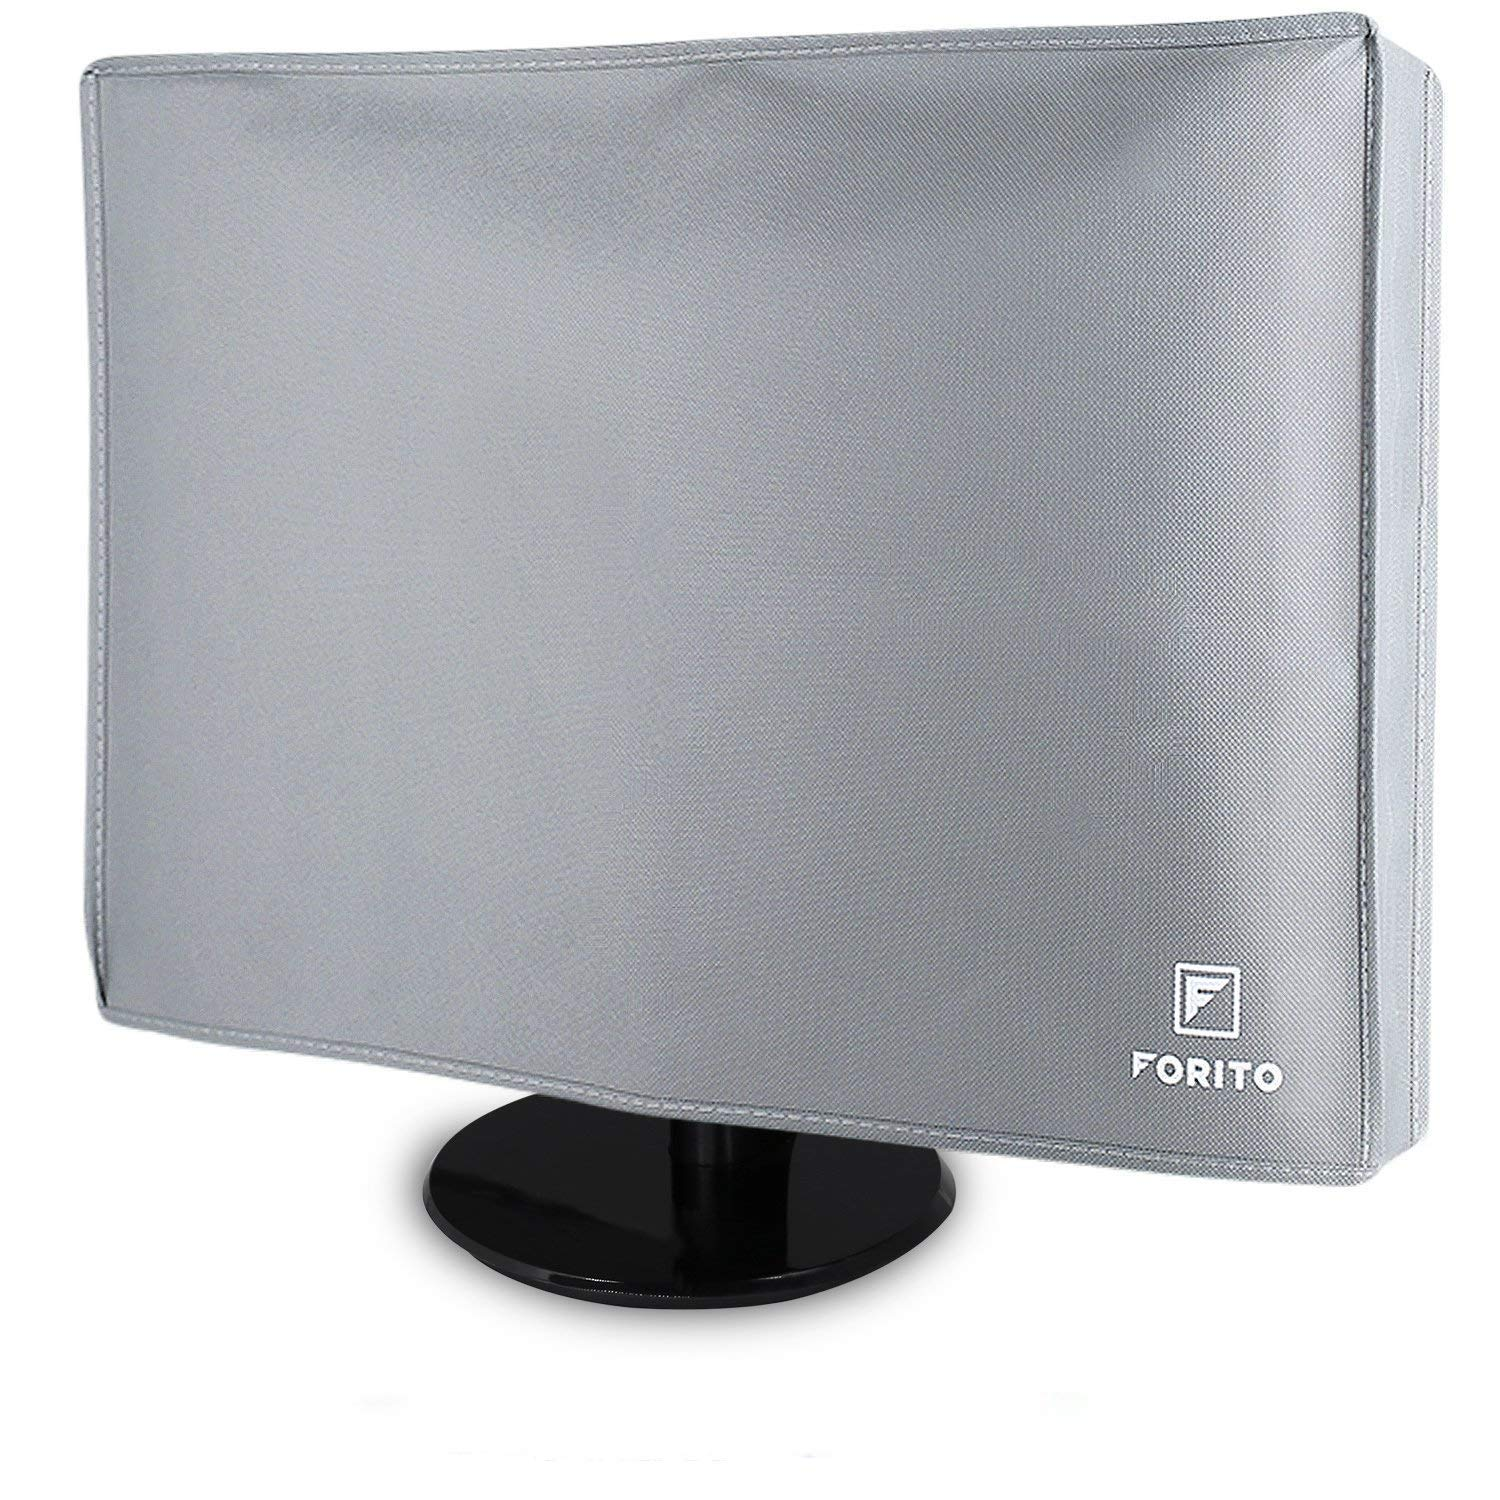 Monitor Dust cover FORITO FM-MDC24-GY